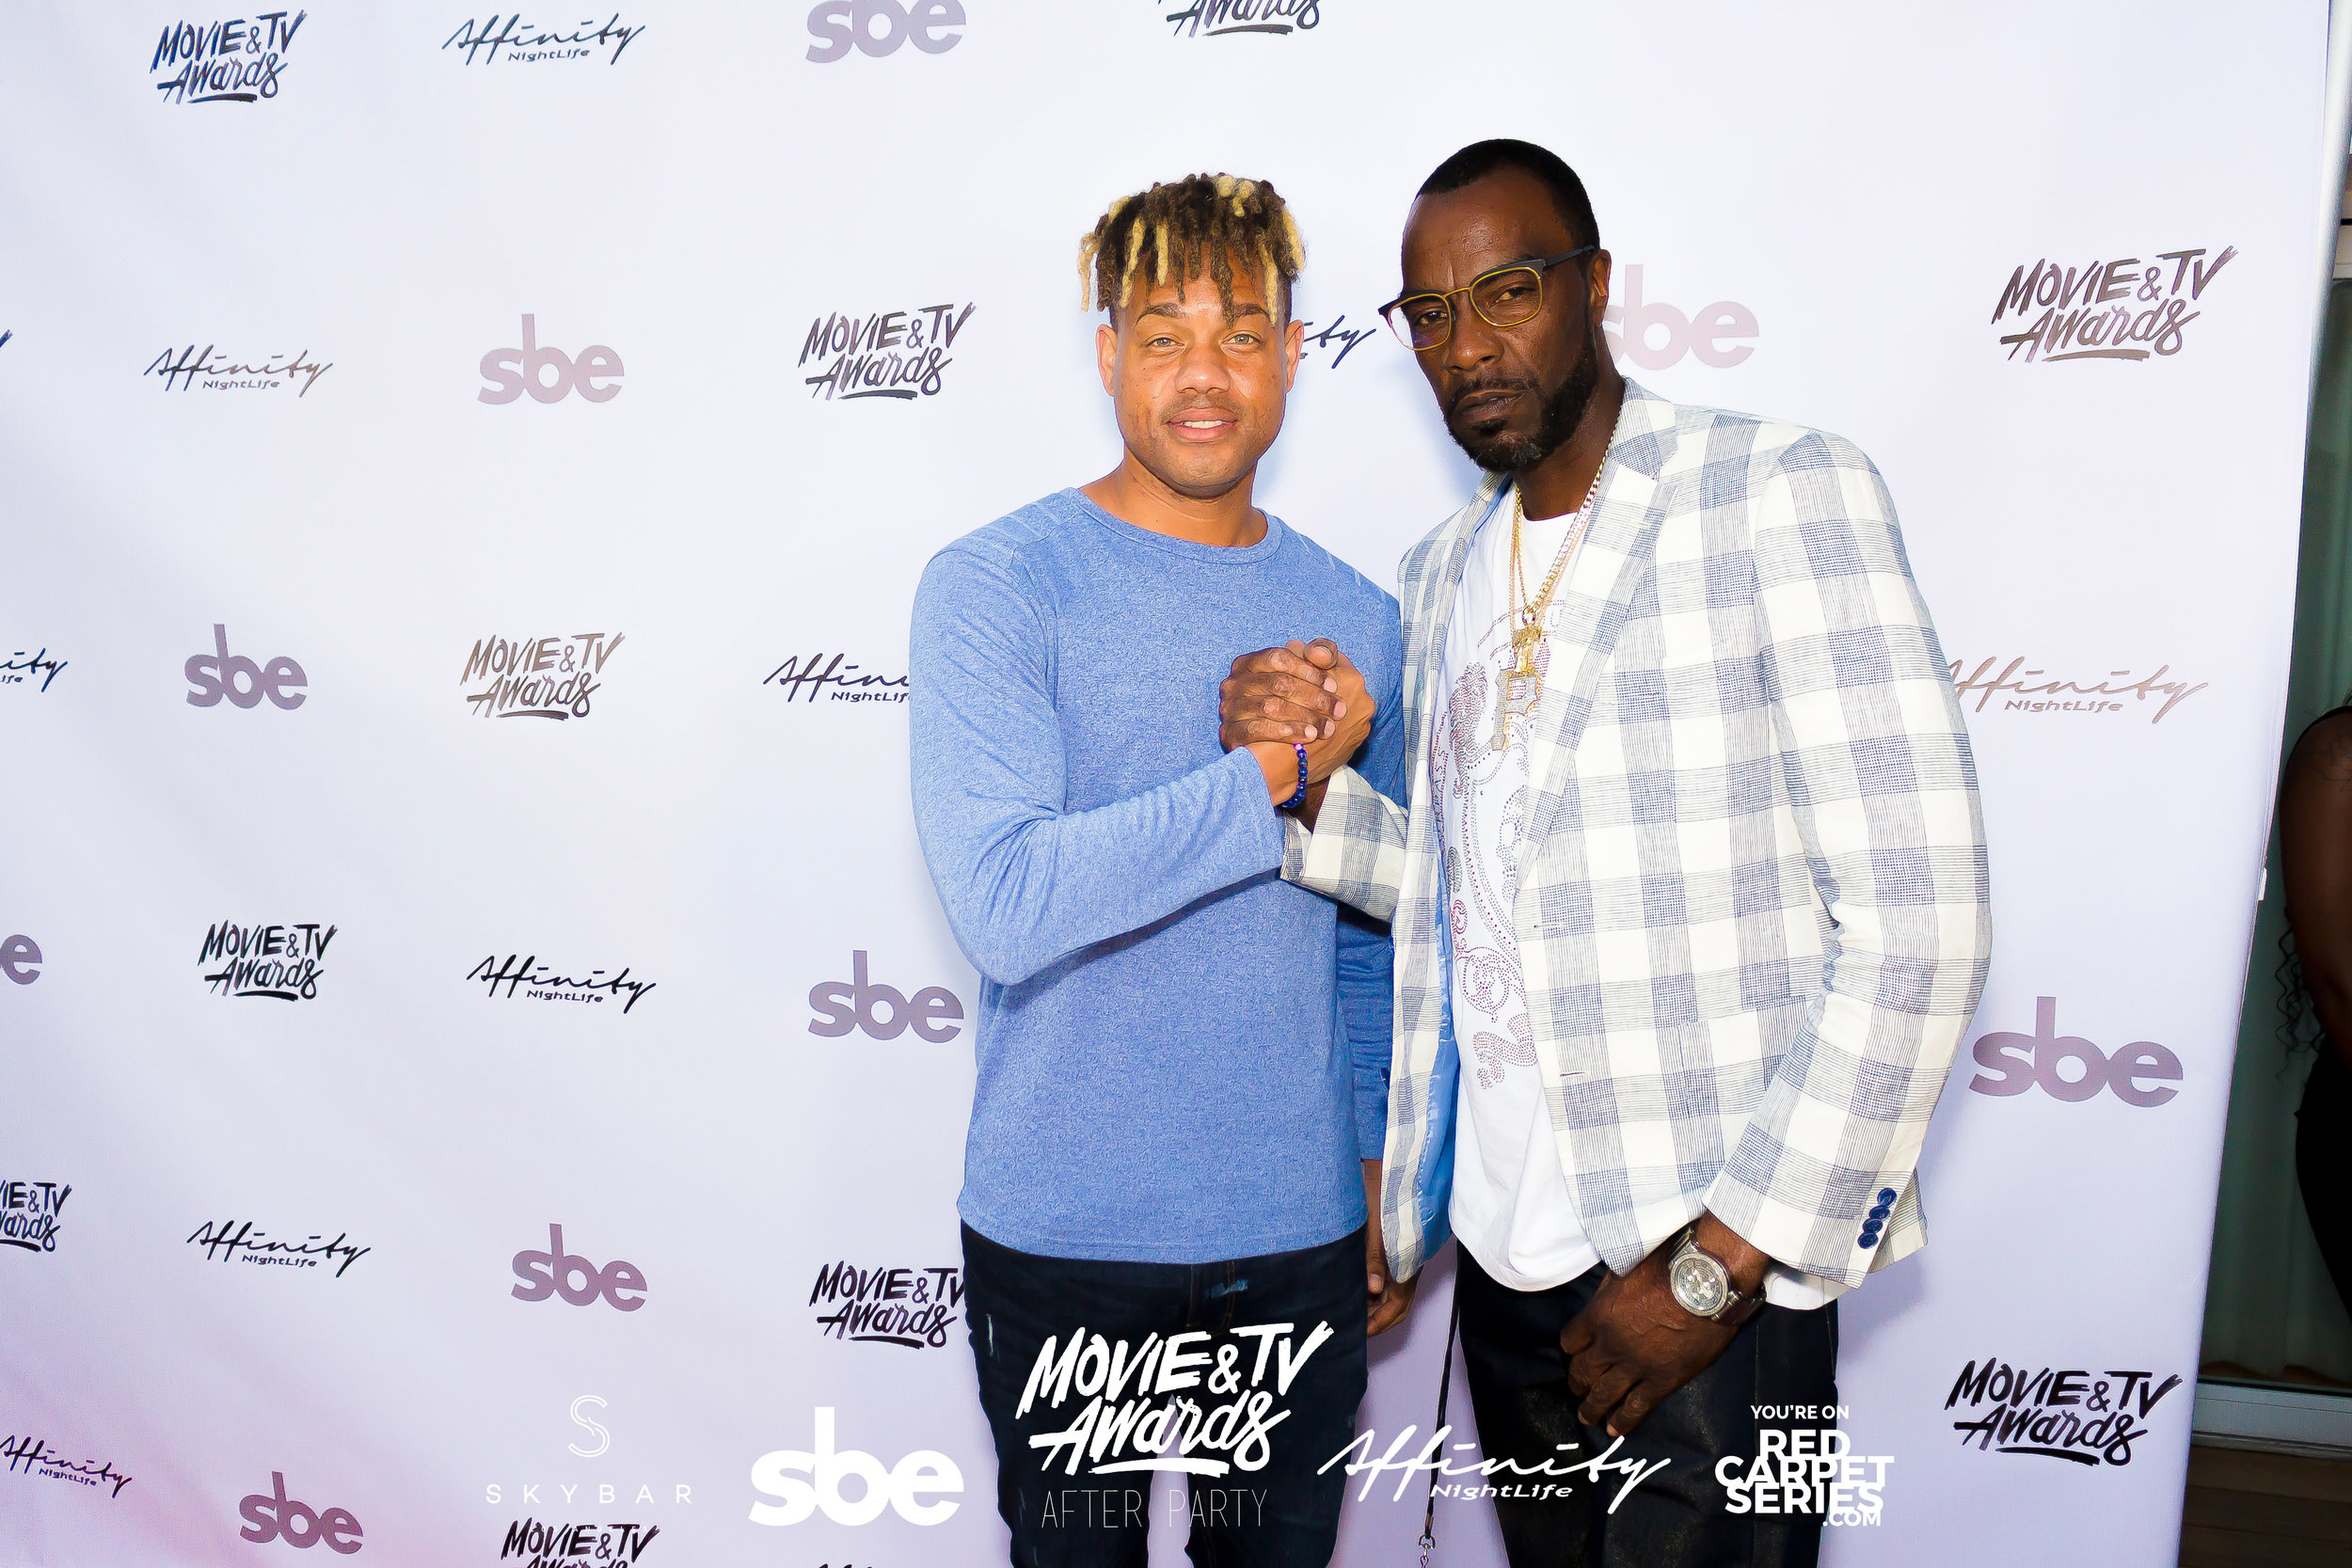 Affinity Nightlife MTV Movie & TV Awards After Party - Skybar at Mondrian - 06-15-19 - Vol. 1_2.jpg